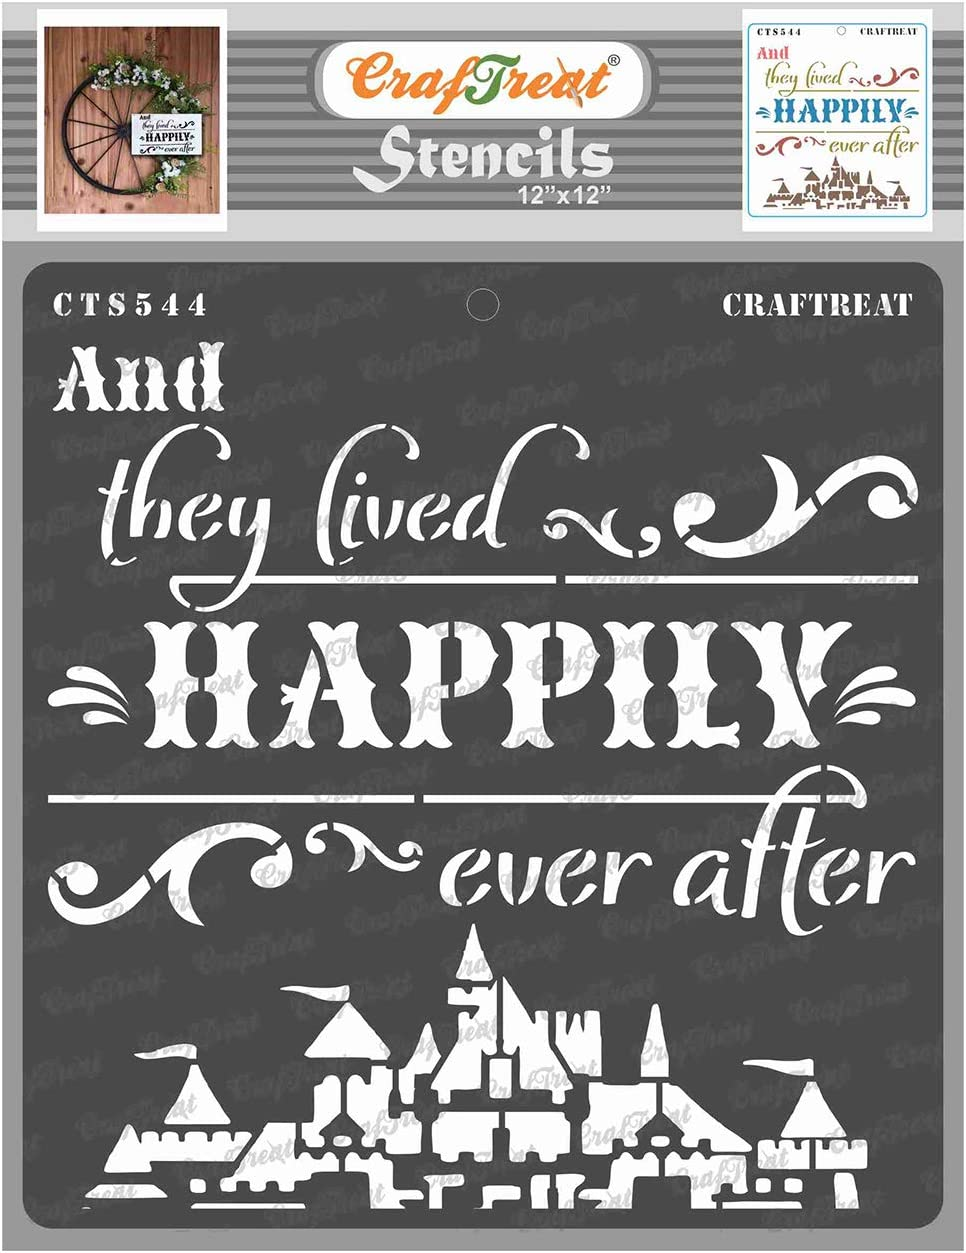 CrafTreat Home Stencils for painting on Wood, Canvas, Paper, Fabric, Floor, Wall and Tile - Happily Ever After - 12x12 Inch - Reusable DIY Art and Craft Stencils for Home Decor - Happy Words Stencils